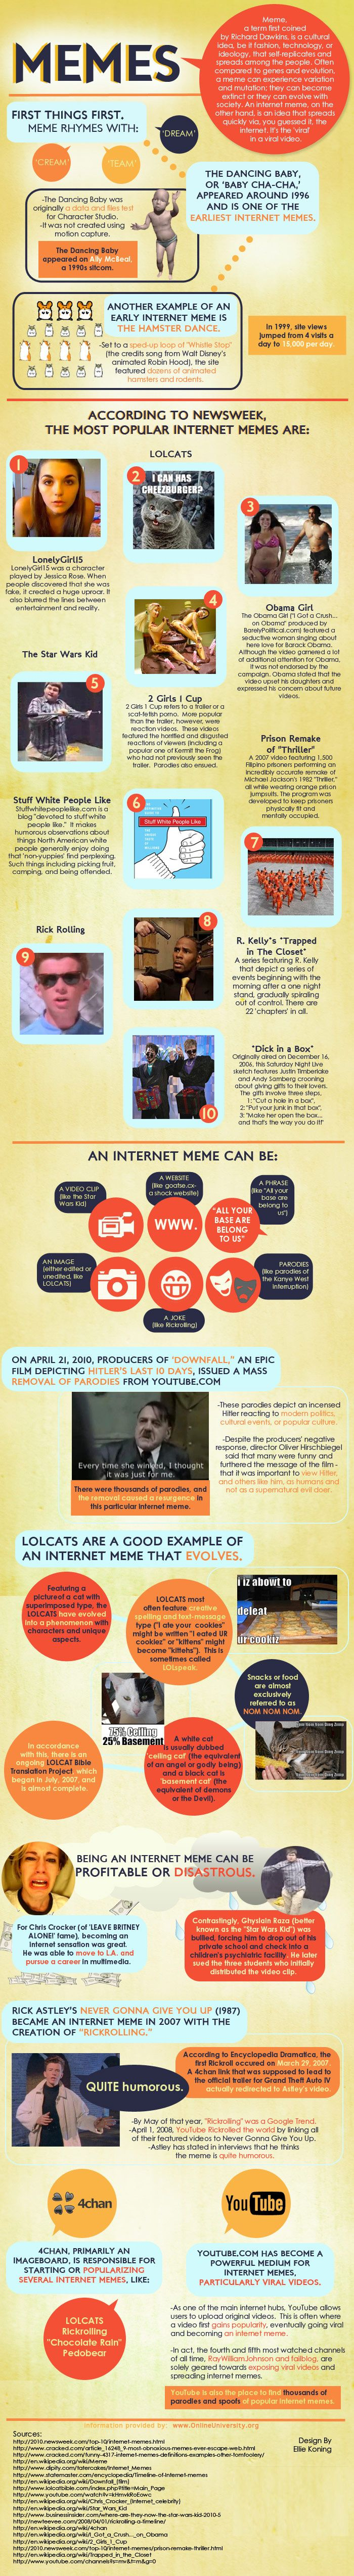 The history of memes visit our new infographic gallery at visualoop com